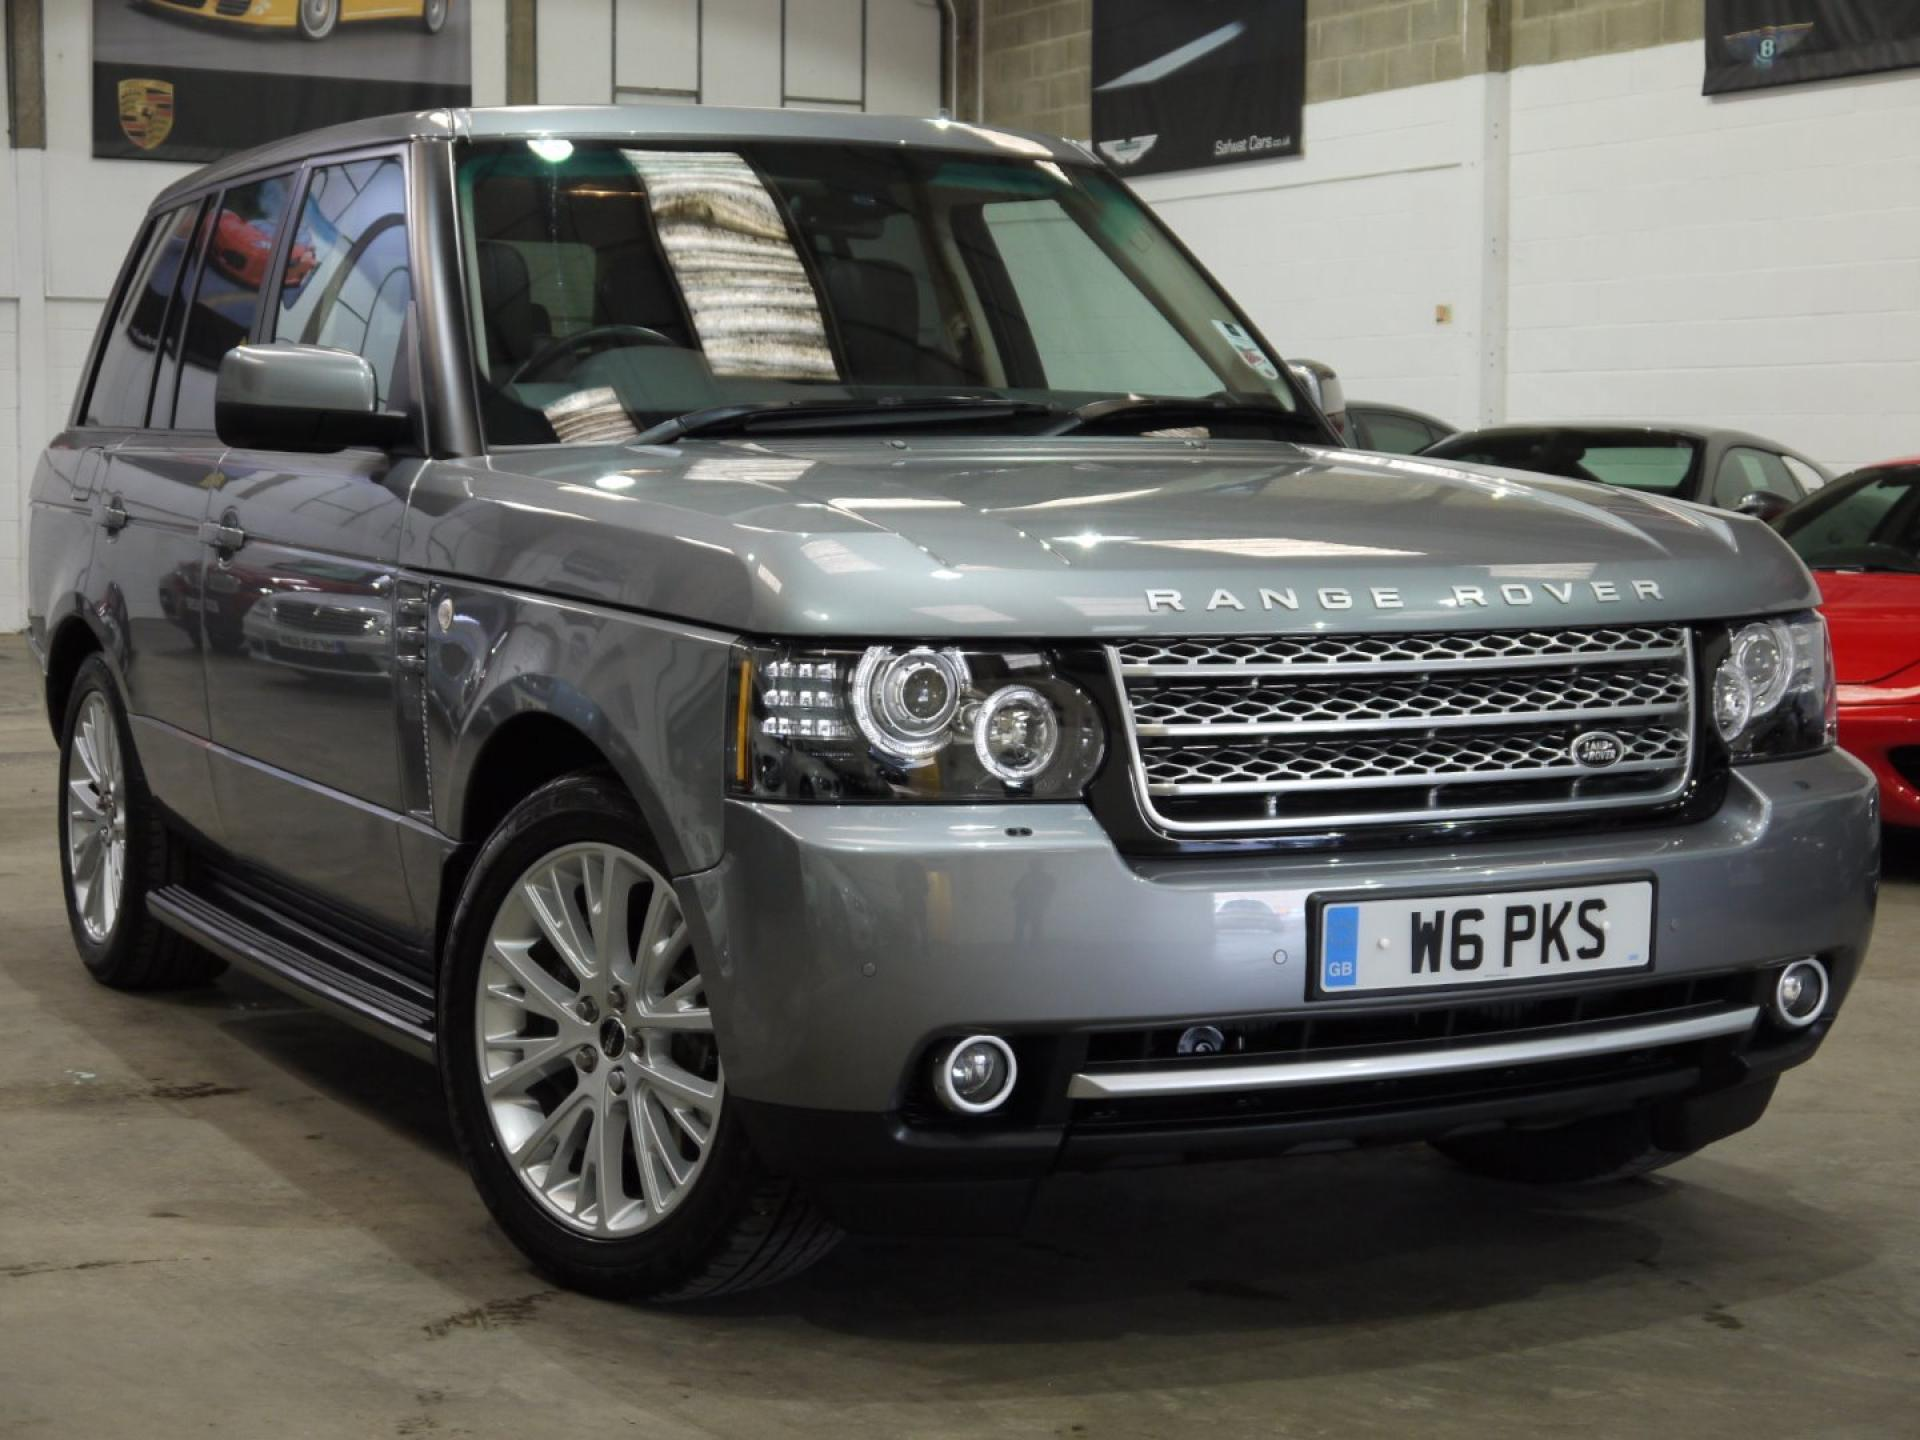 Used Range Rovers For Sale Uk >> Range Rover Westminster | Autos Post